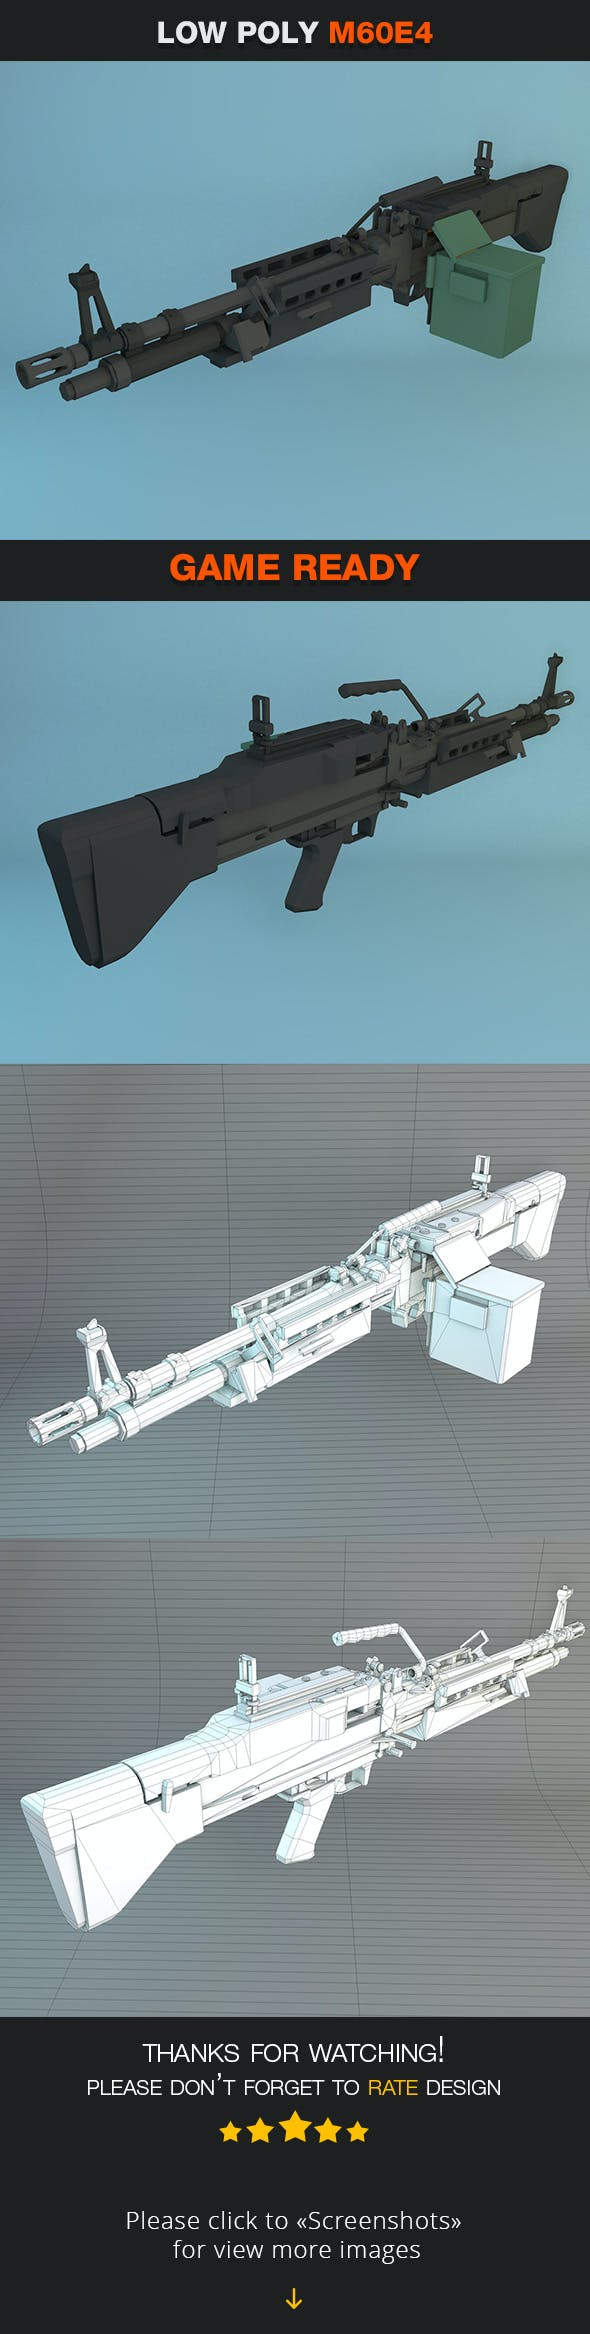 Low Poly M60E4 - 3DOcean Item for Sale